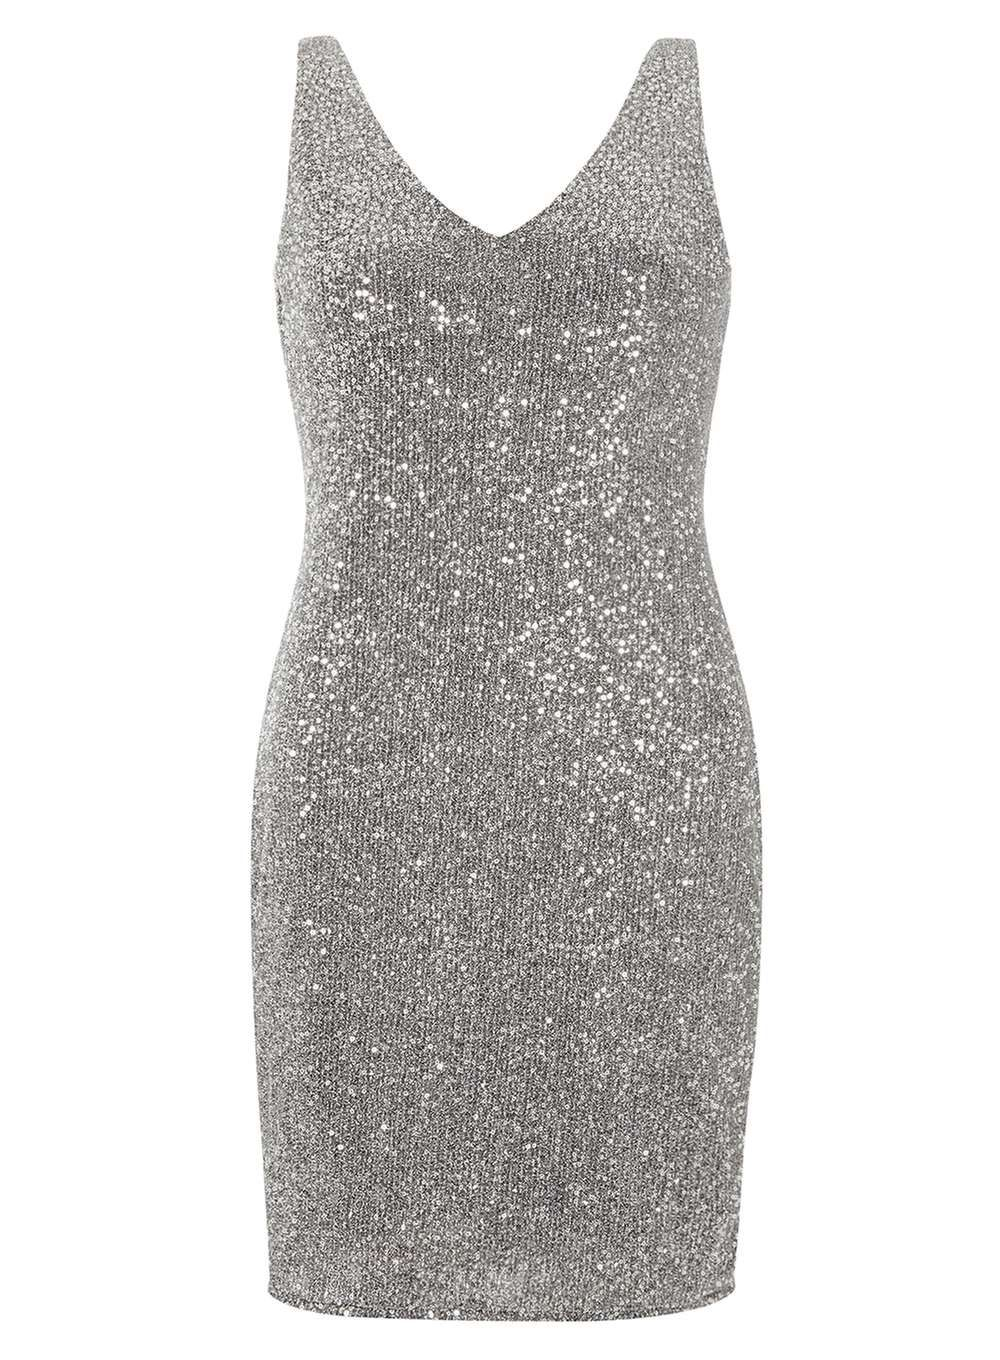 c260a1c733ba4 Sequin shift dress - Going Out & Partywear - Clothing - Dorothy Perkins